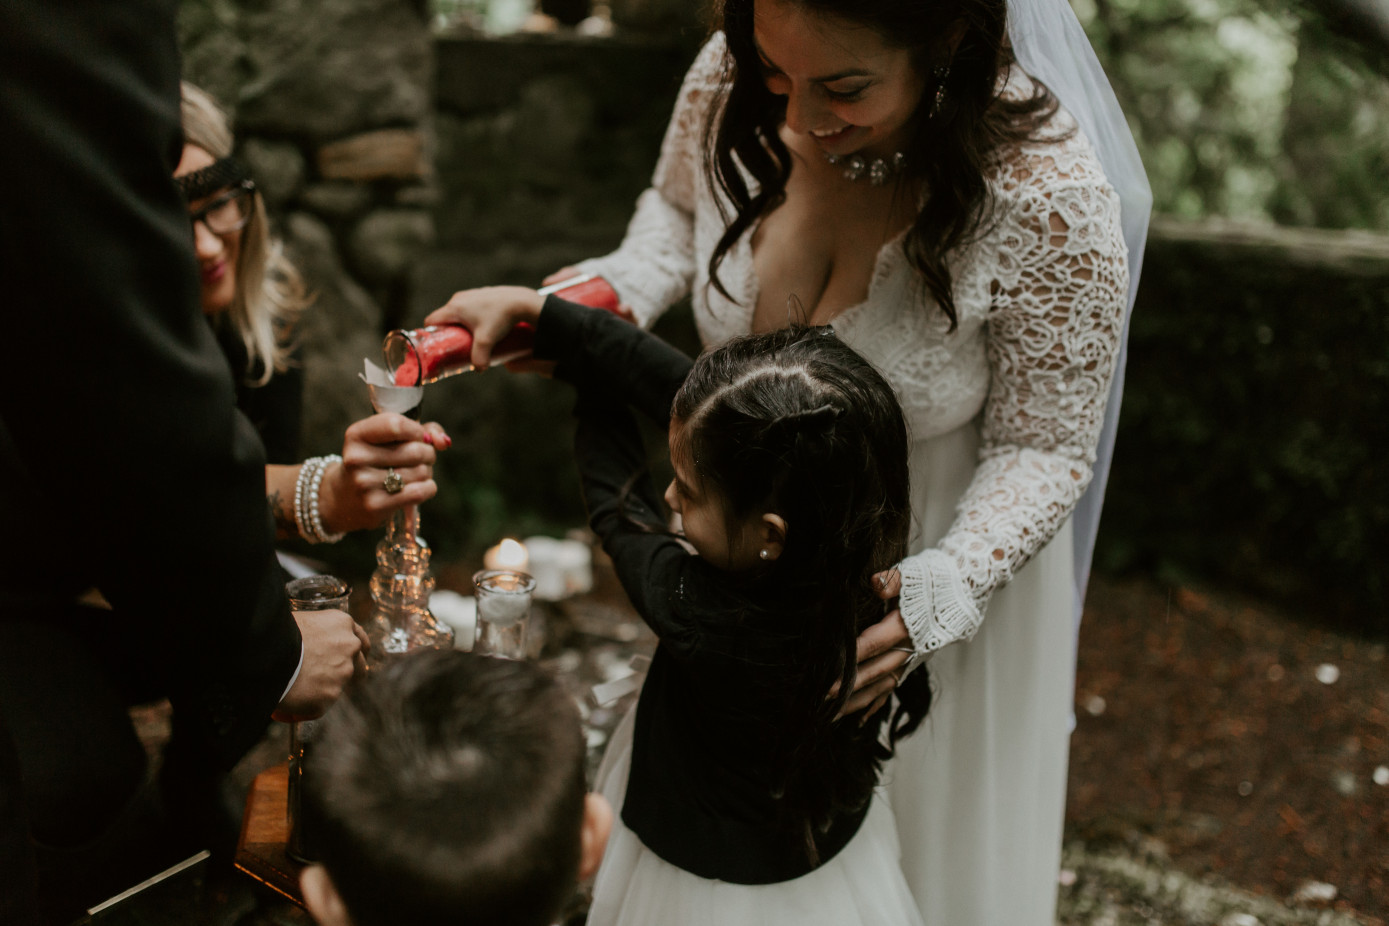 Sarah helps her daughter pour sand at Skamania House, Washington. Elopement photography in Portland Oregon by Sienna Plus Josh.